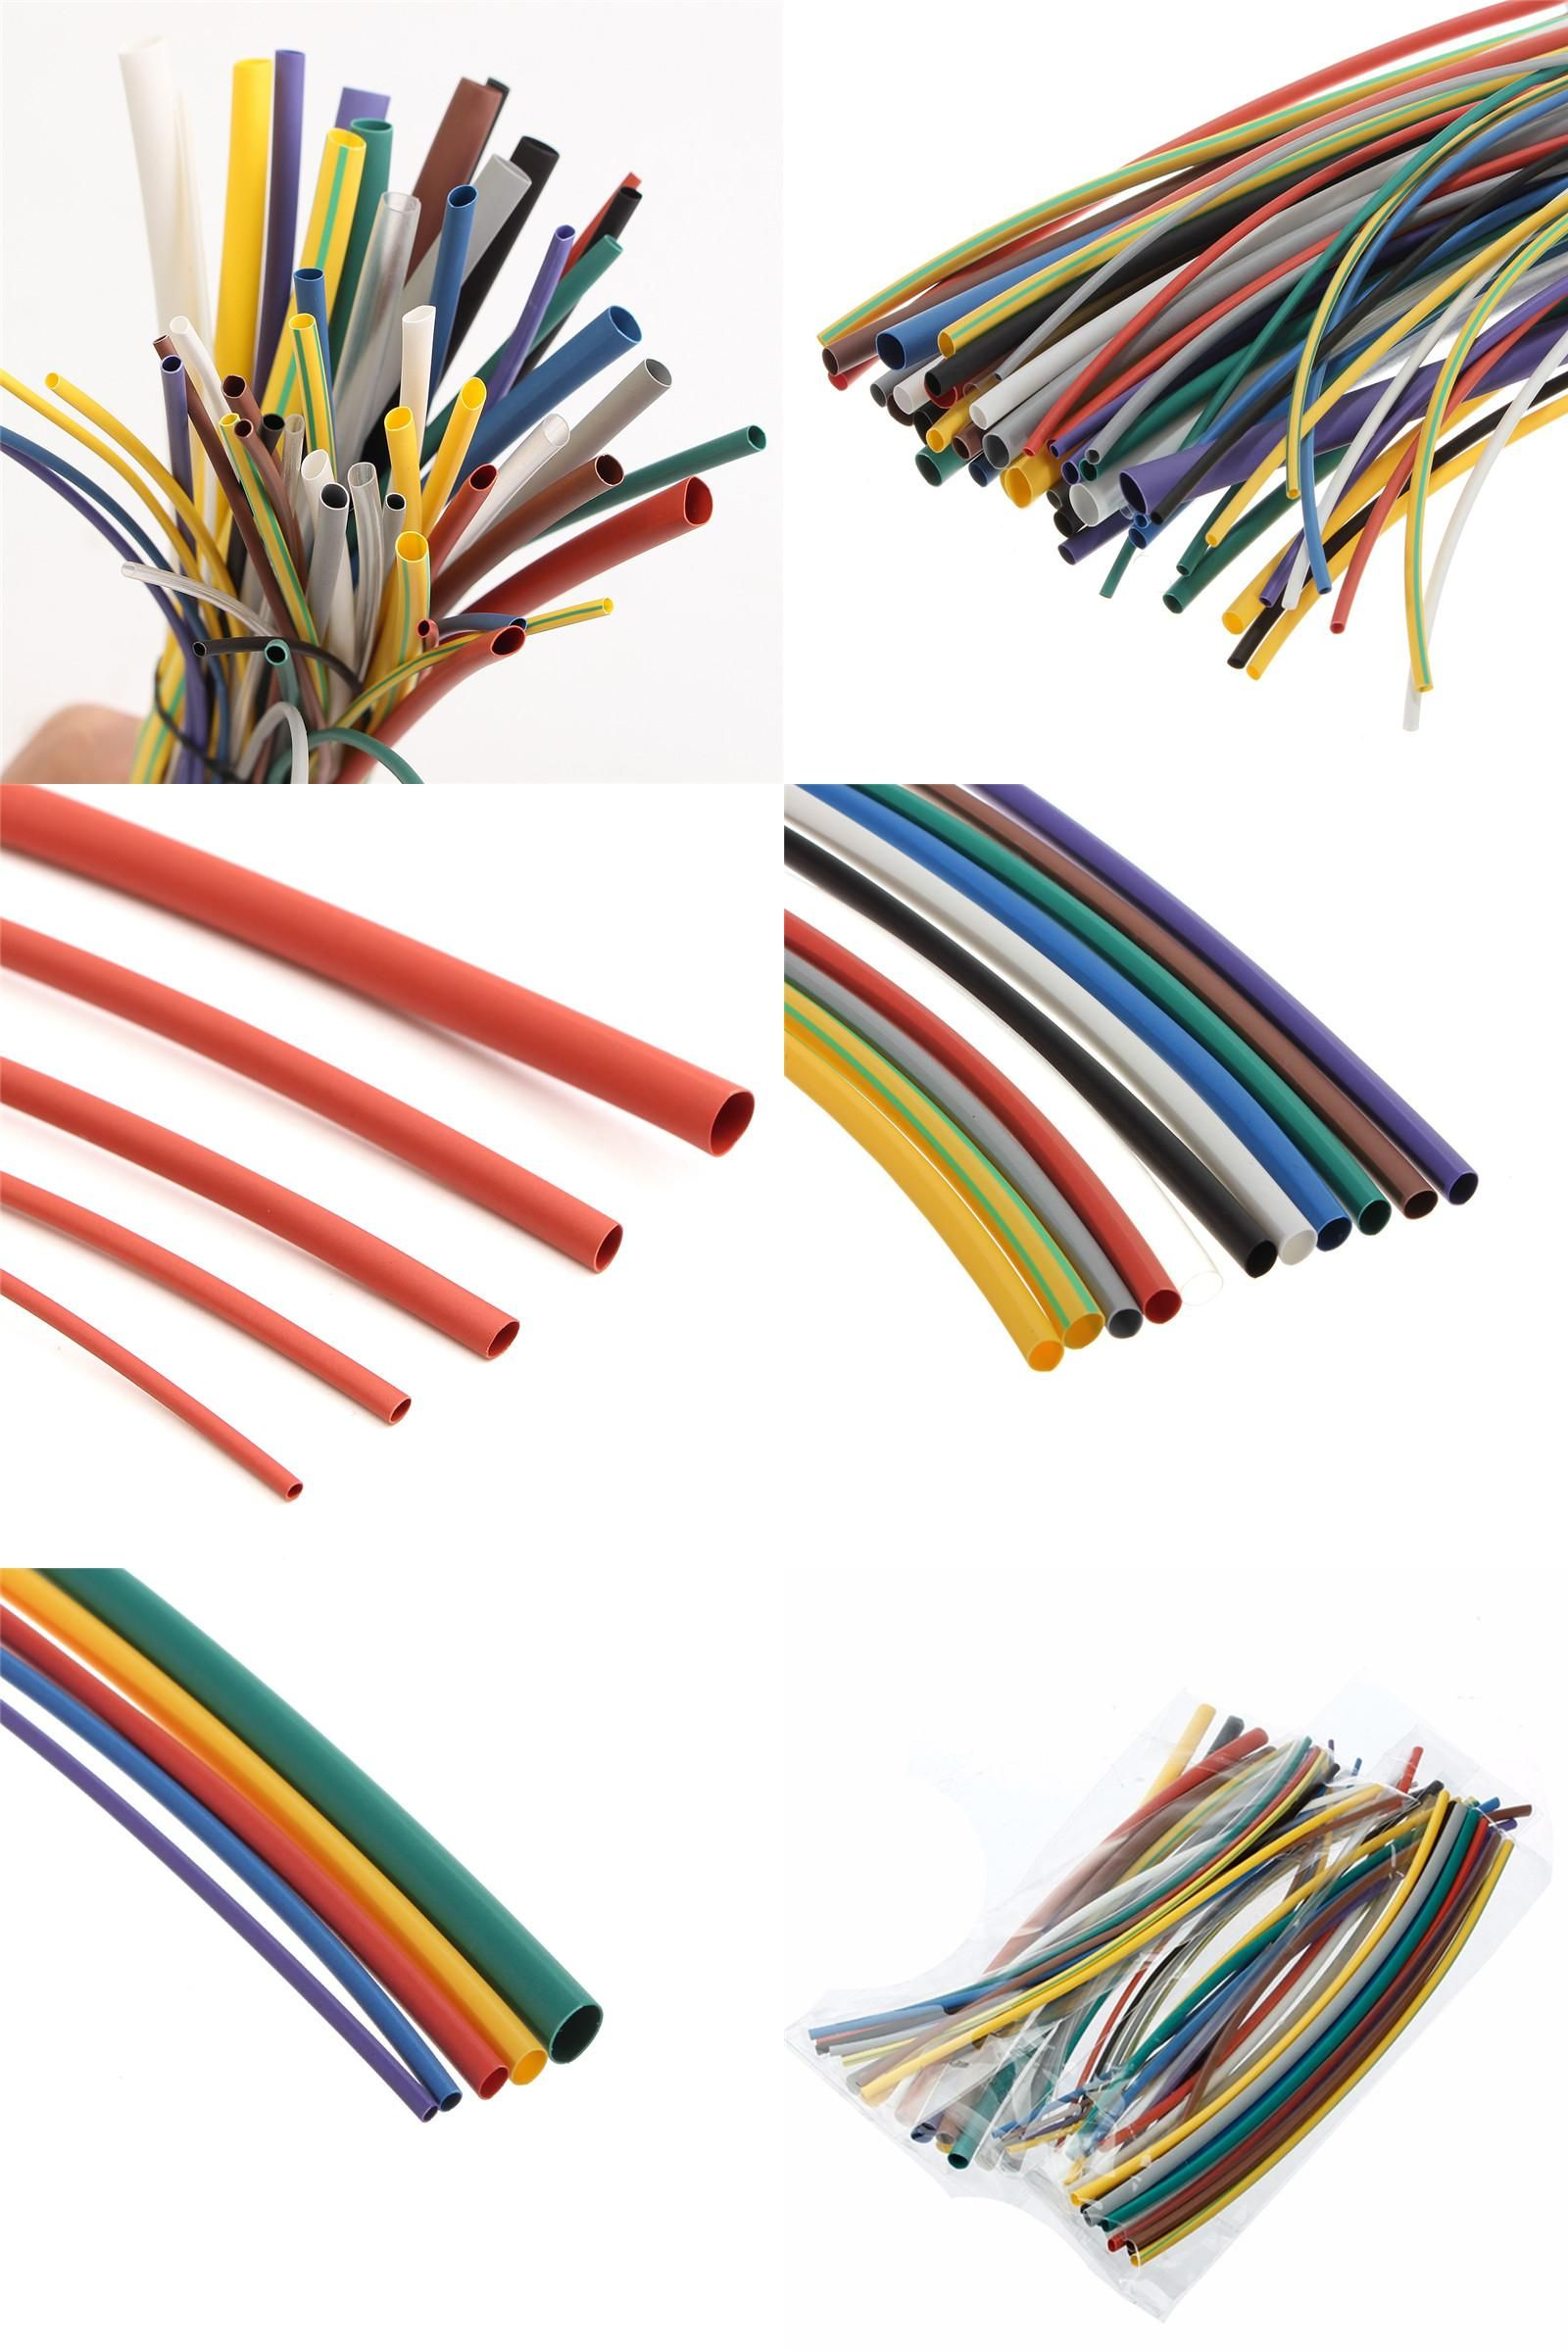 Visit to Buy] 55Pcs 200mm Heat Shrink Tube Sleeving Wrap Wire Auto ...